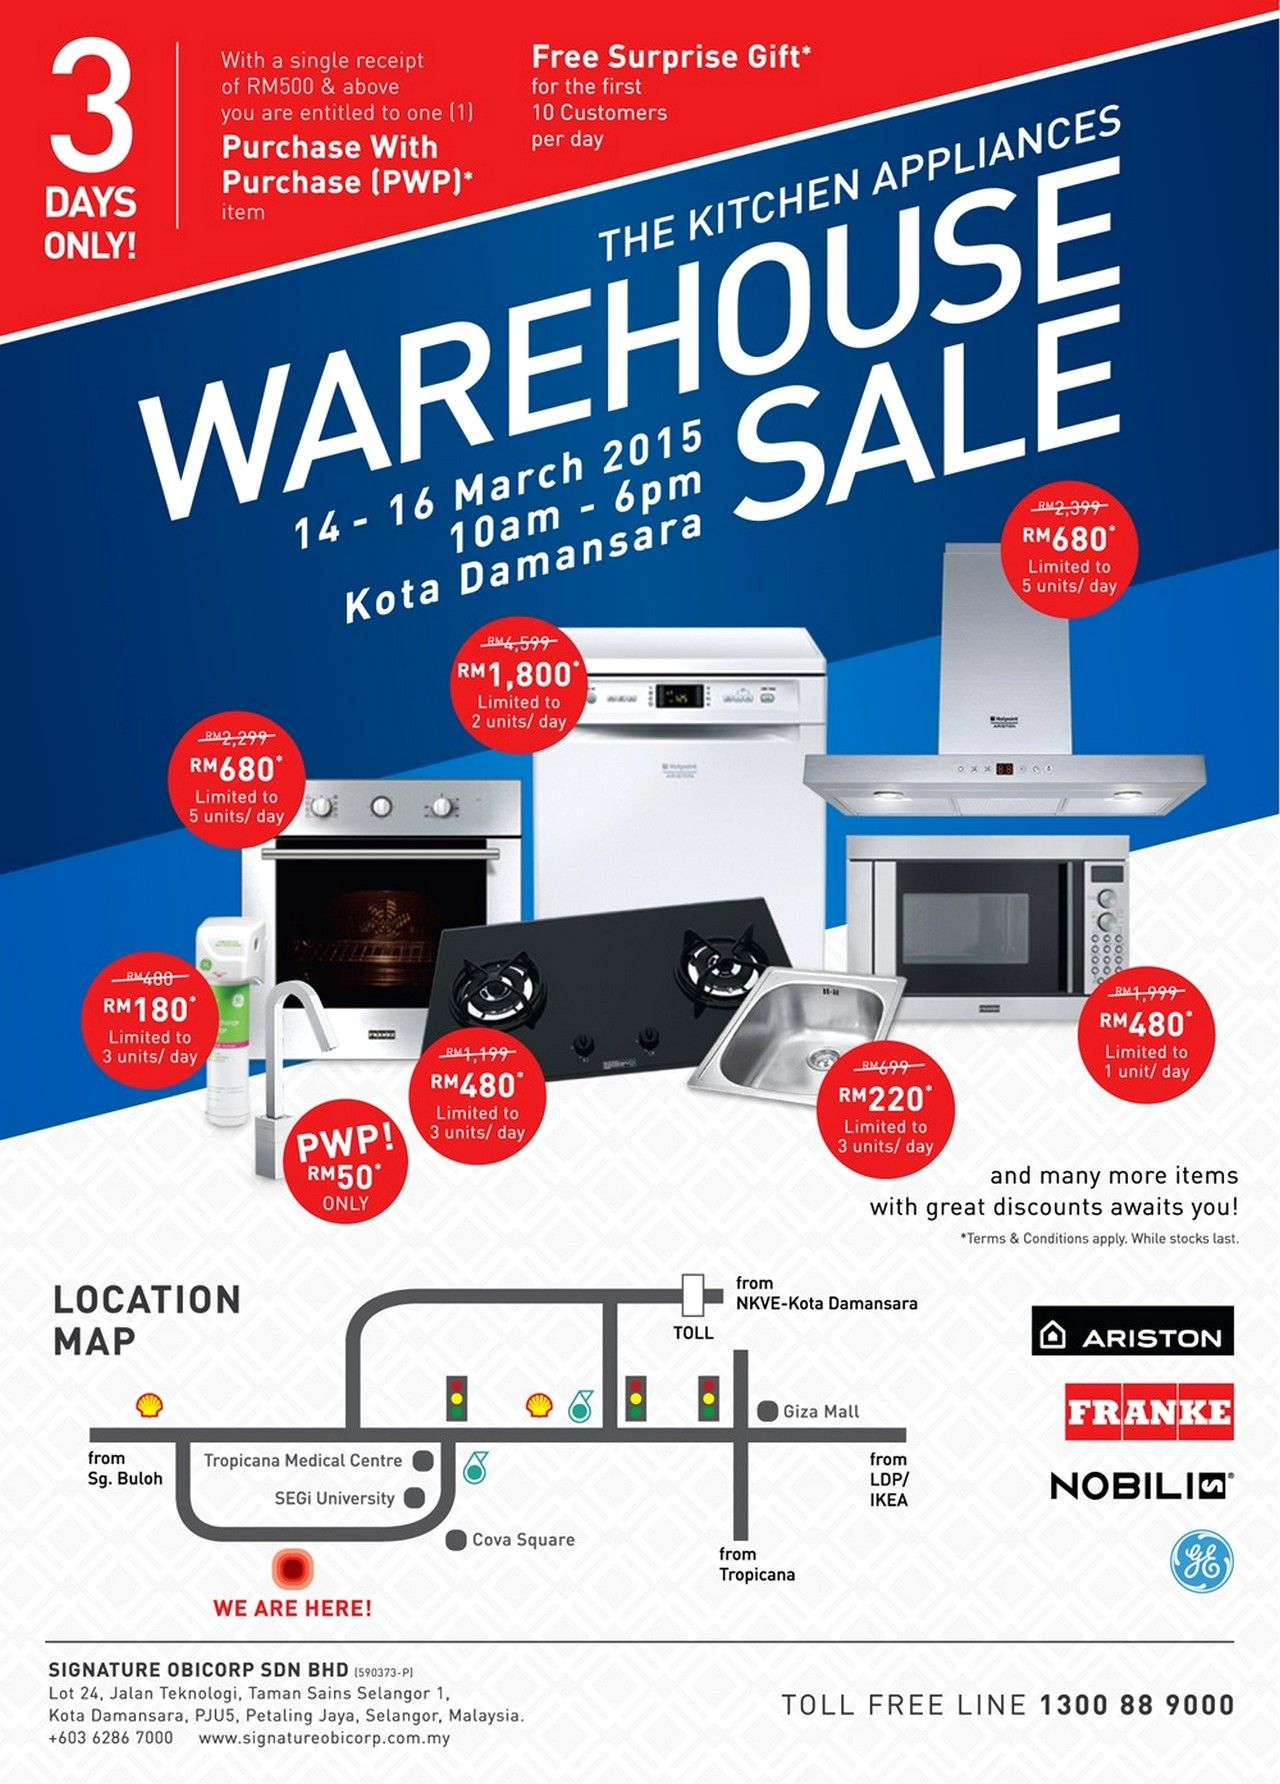 charming Kitchen Appliance Clearance Sales #7: 14-16 Mar 2015: Signature Kitchen Warehouse Sale for Kitchen Appliances u0026  Accessories Clearance